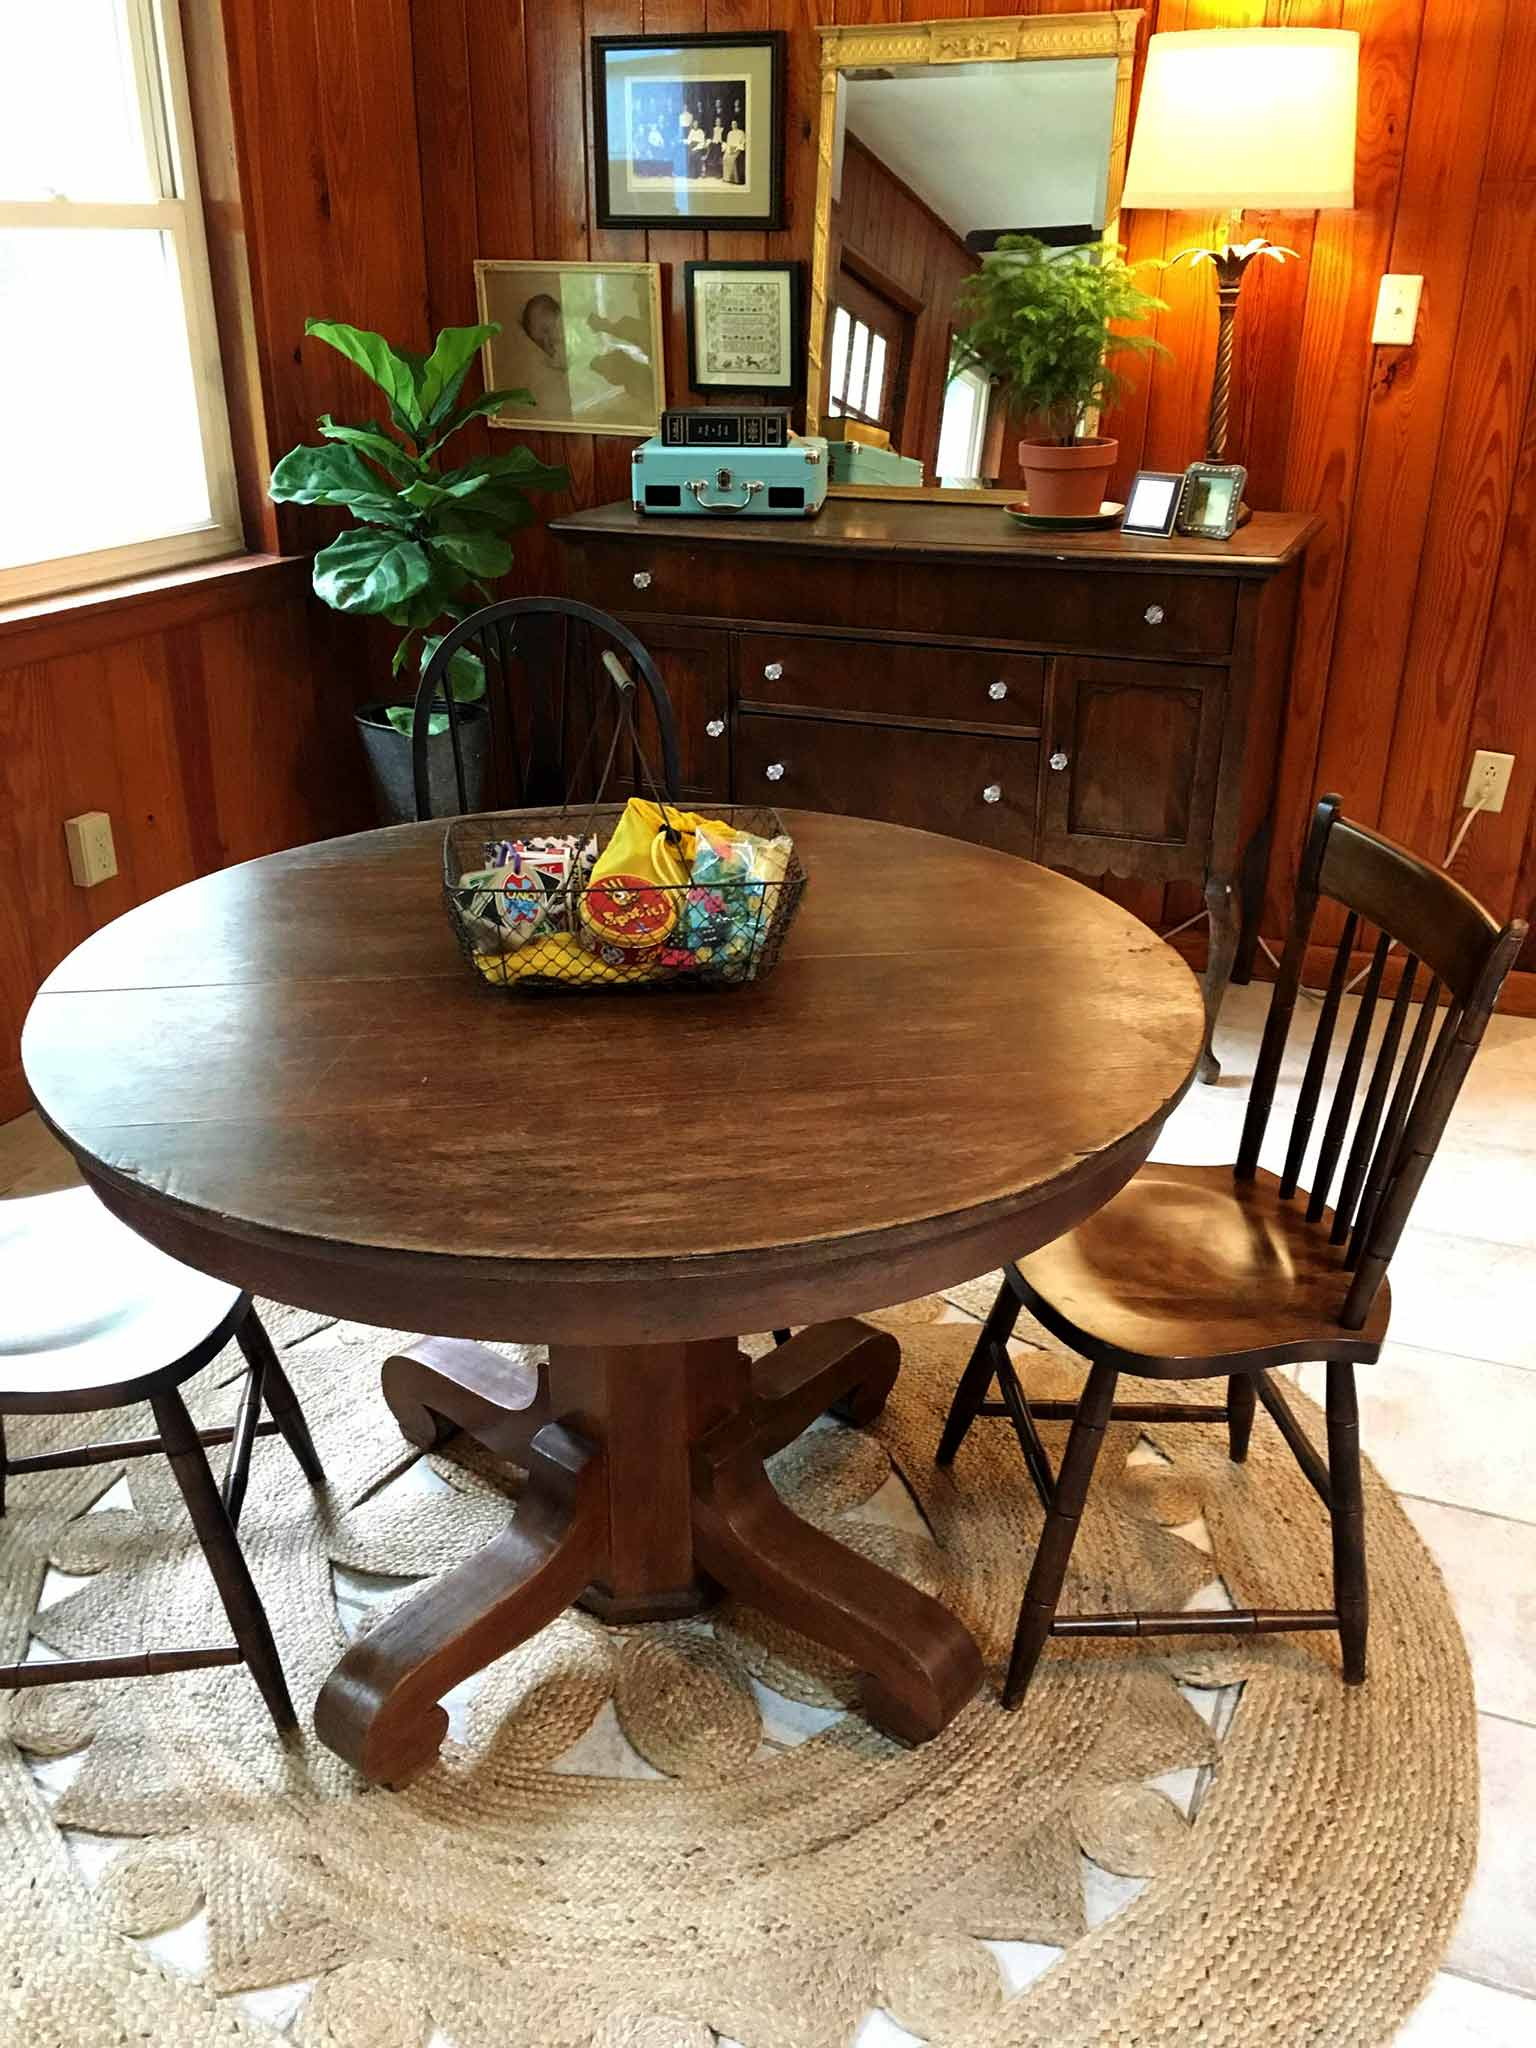 Games table - A Cozy & Eclectic Bonus Room Makeover - That Homebird Life Blog